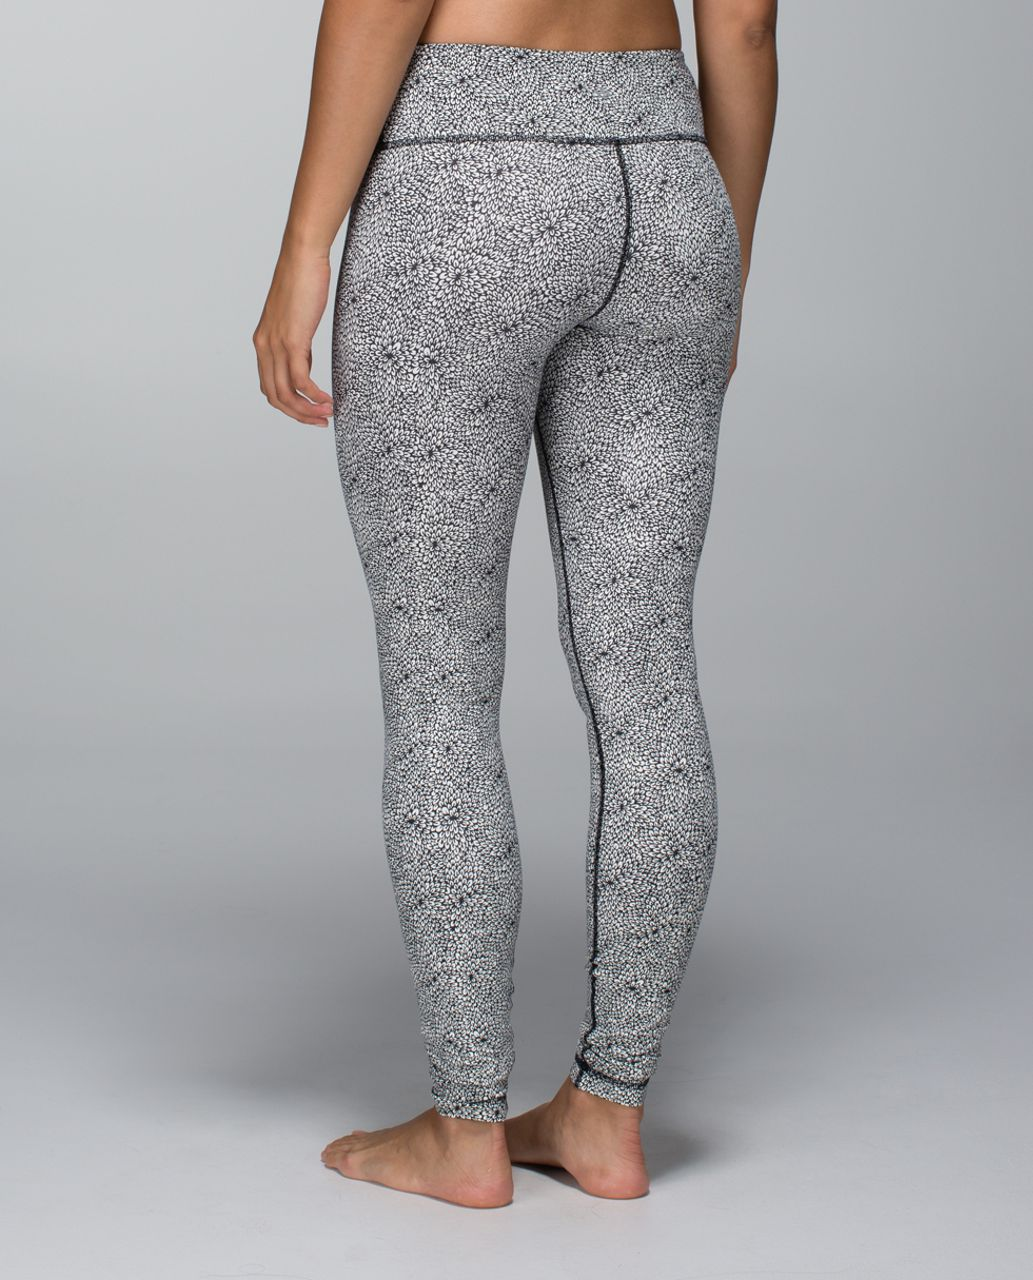 29a184404b4633 Lululemon Wunder Under Pant - Plush Petal Deep Coal Ghost - lulu fanatics